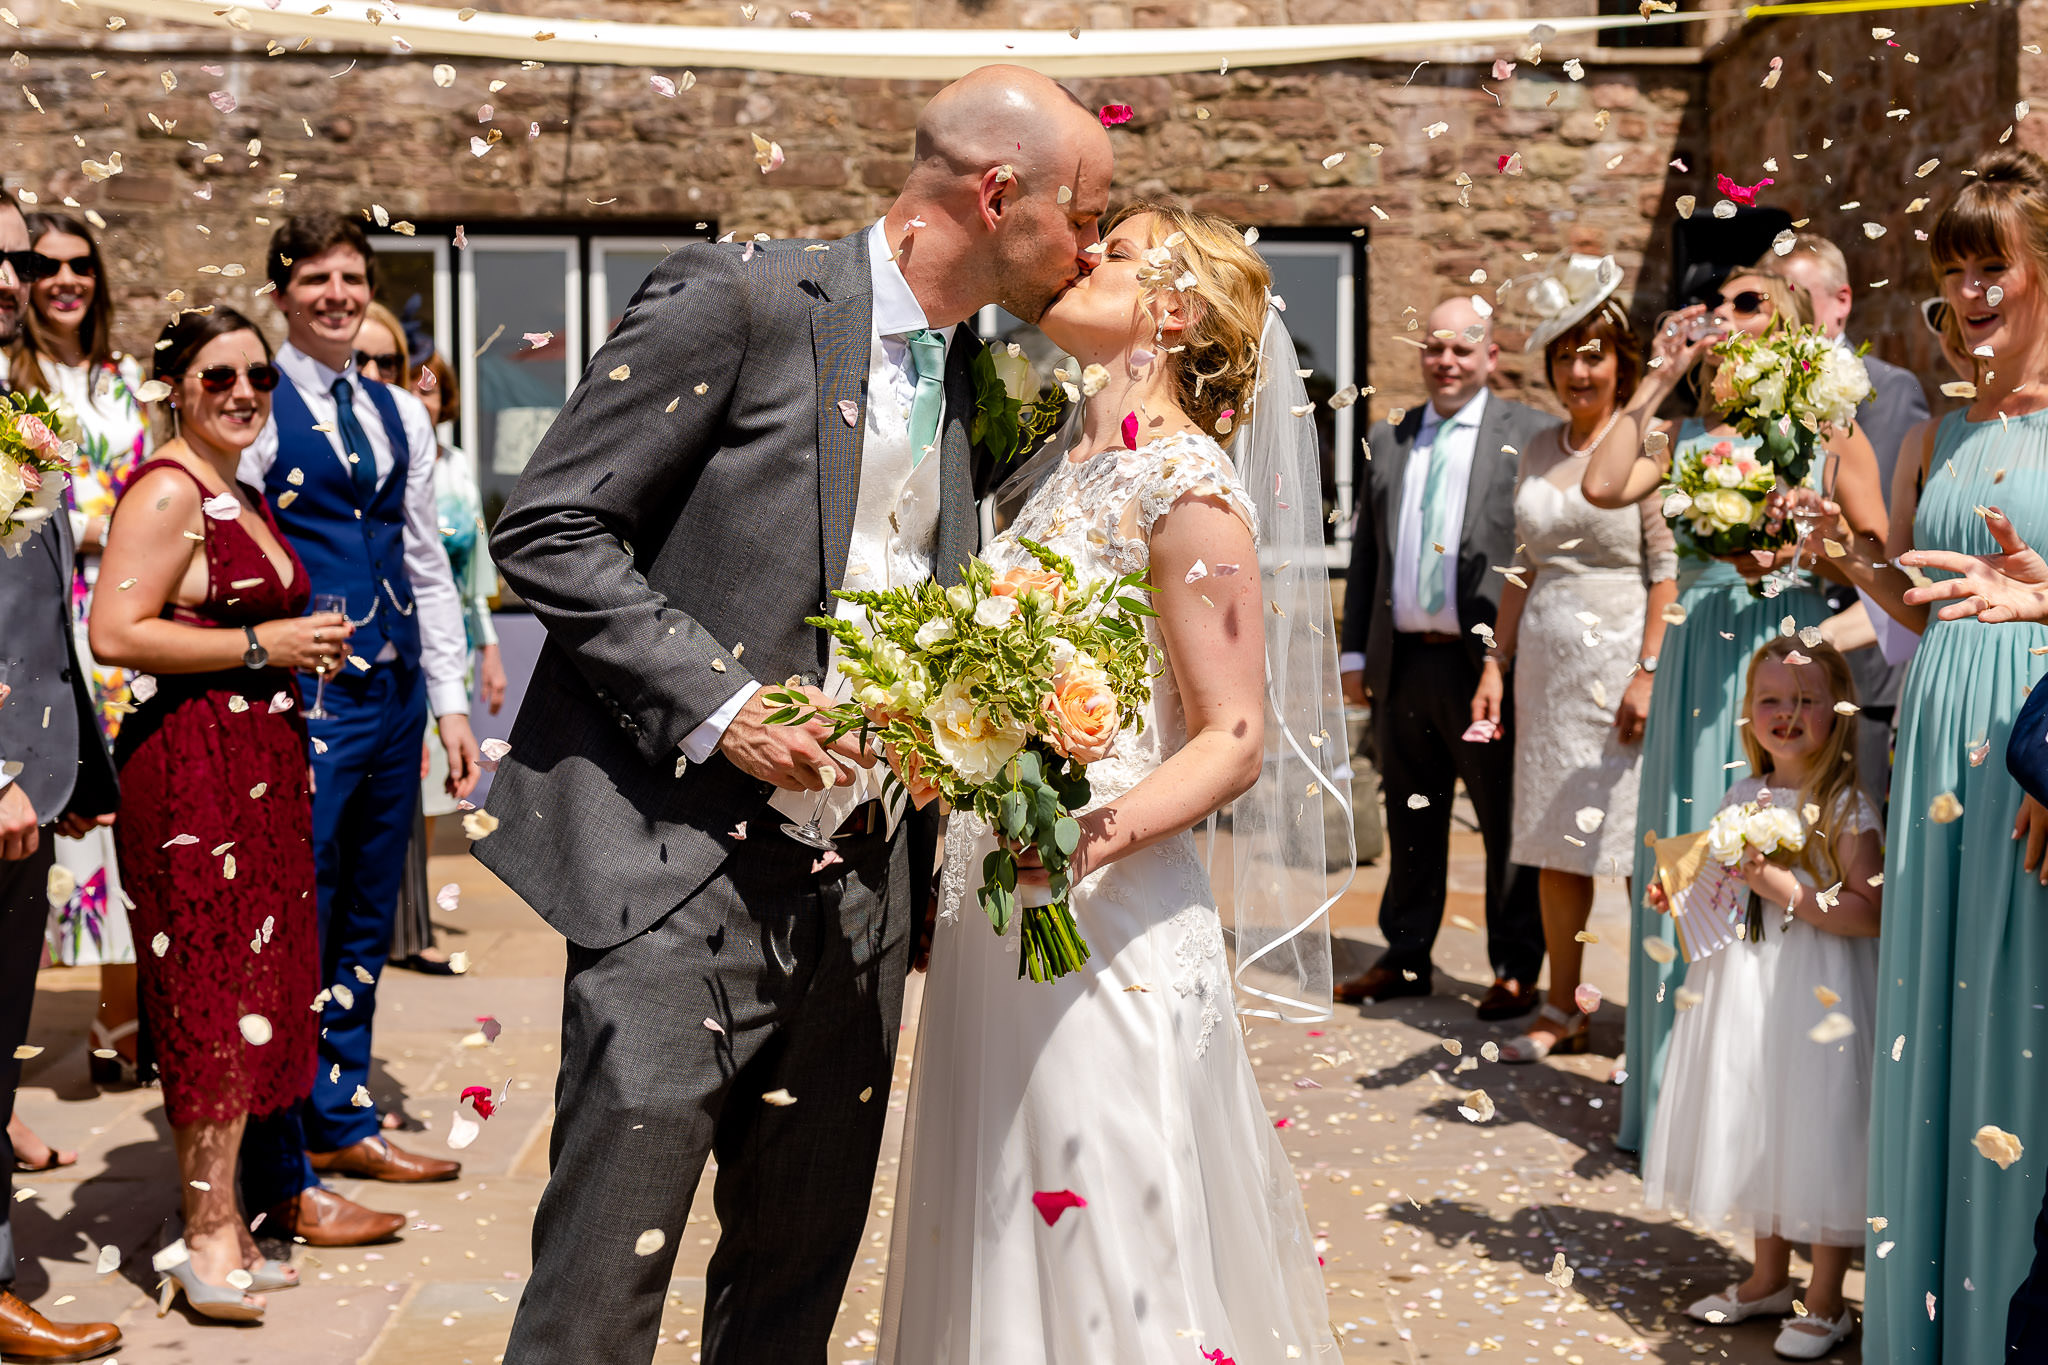 Art by Design - Caer Llan Wedding Photography - Confetti